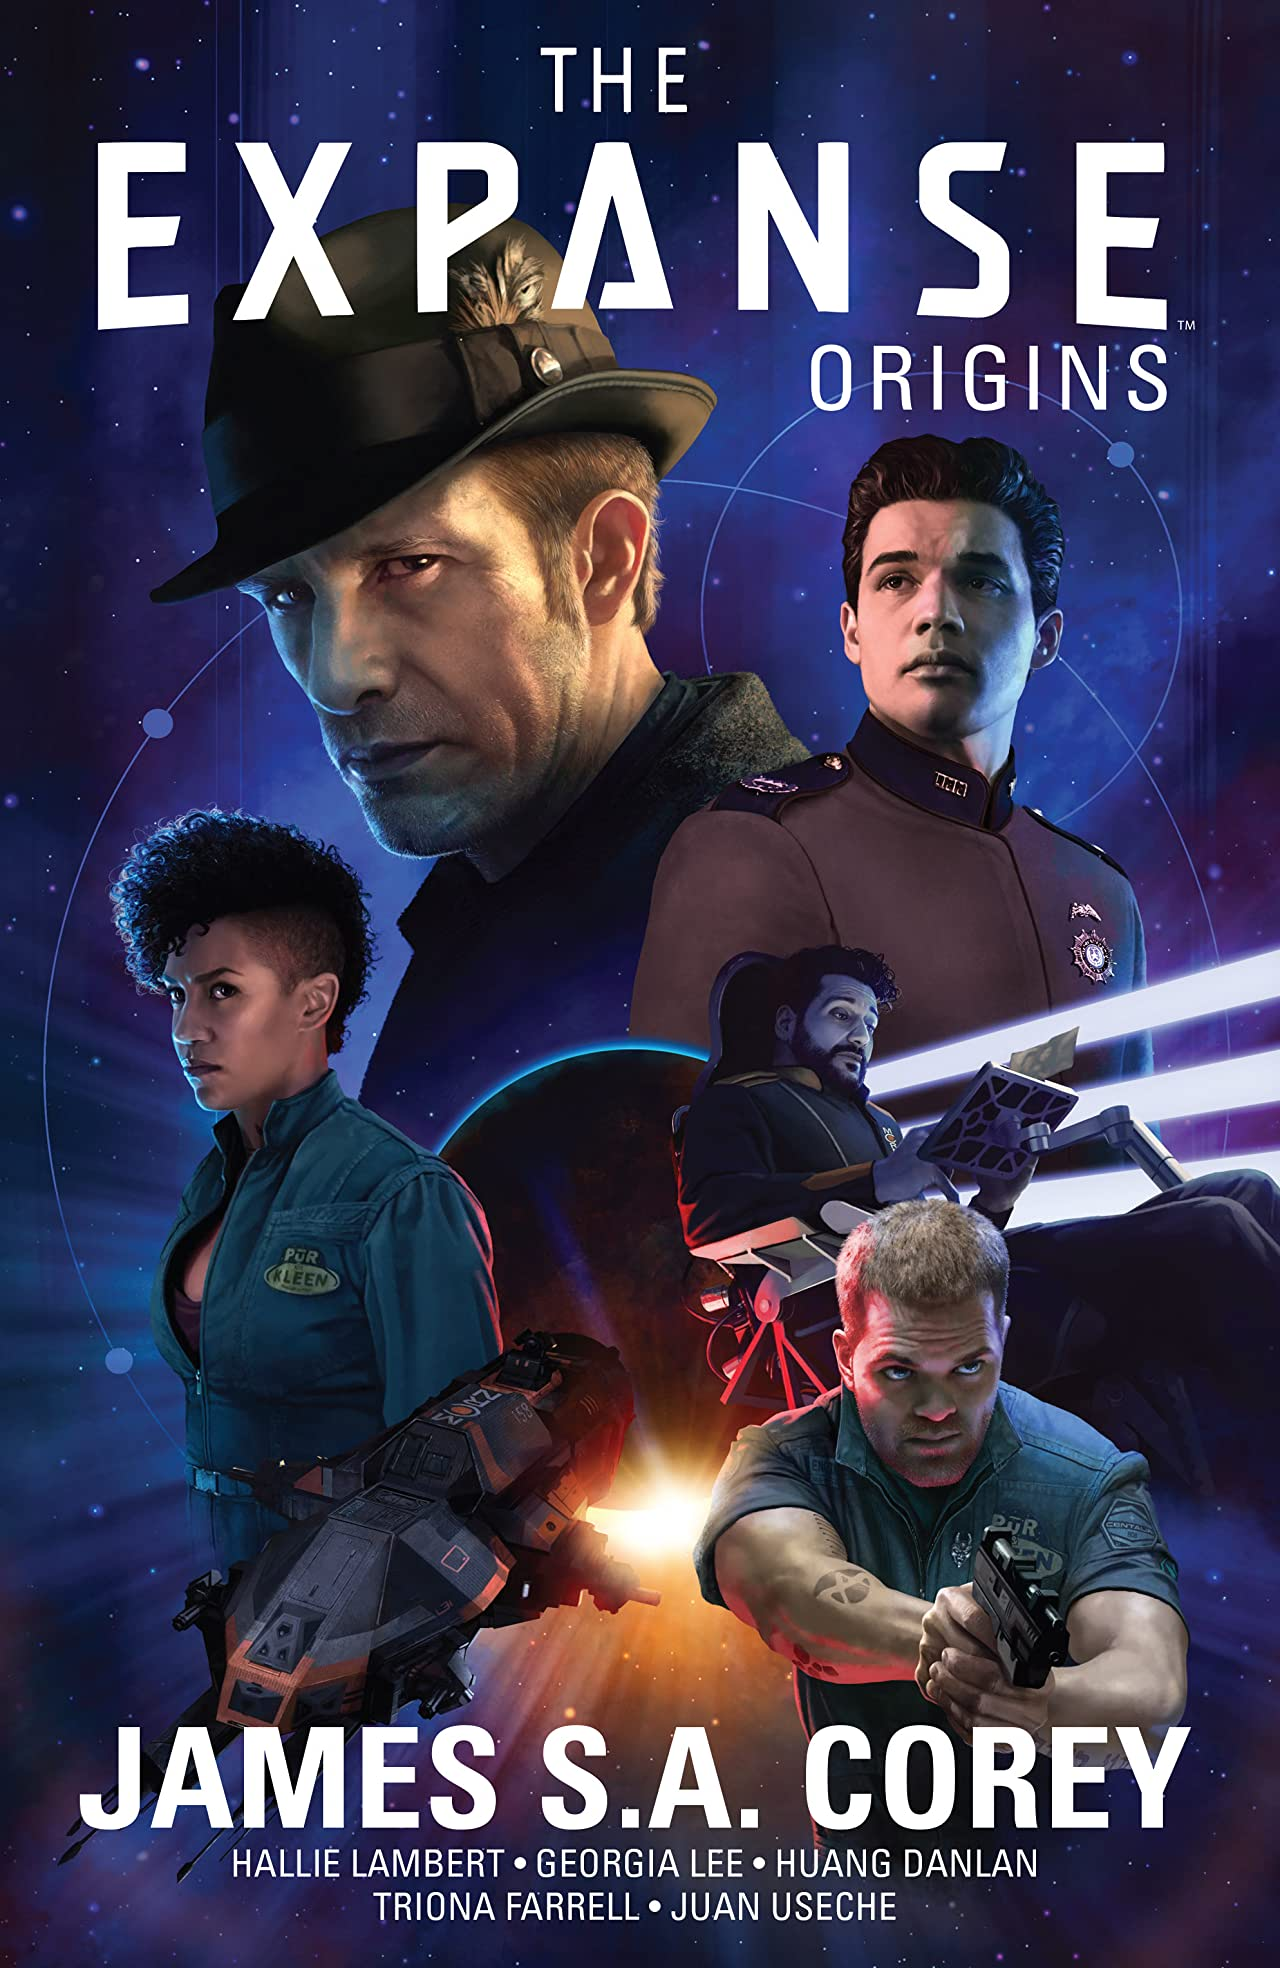 The Expanse Vol. 1: Origins